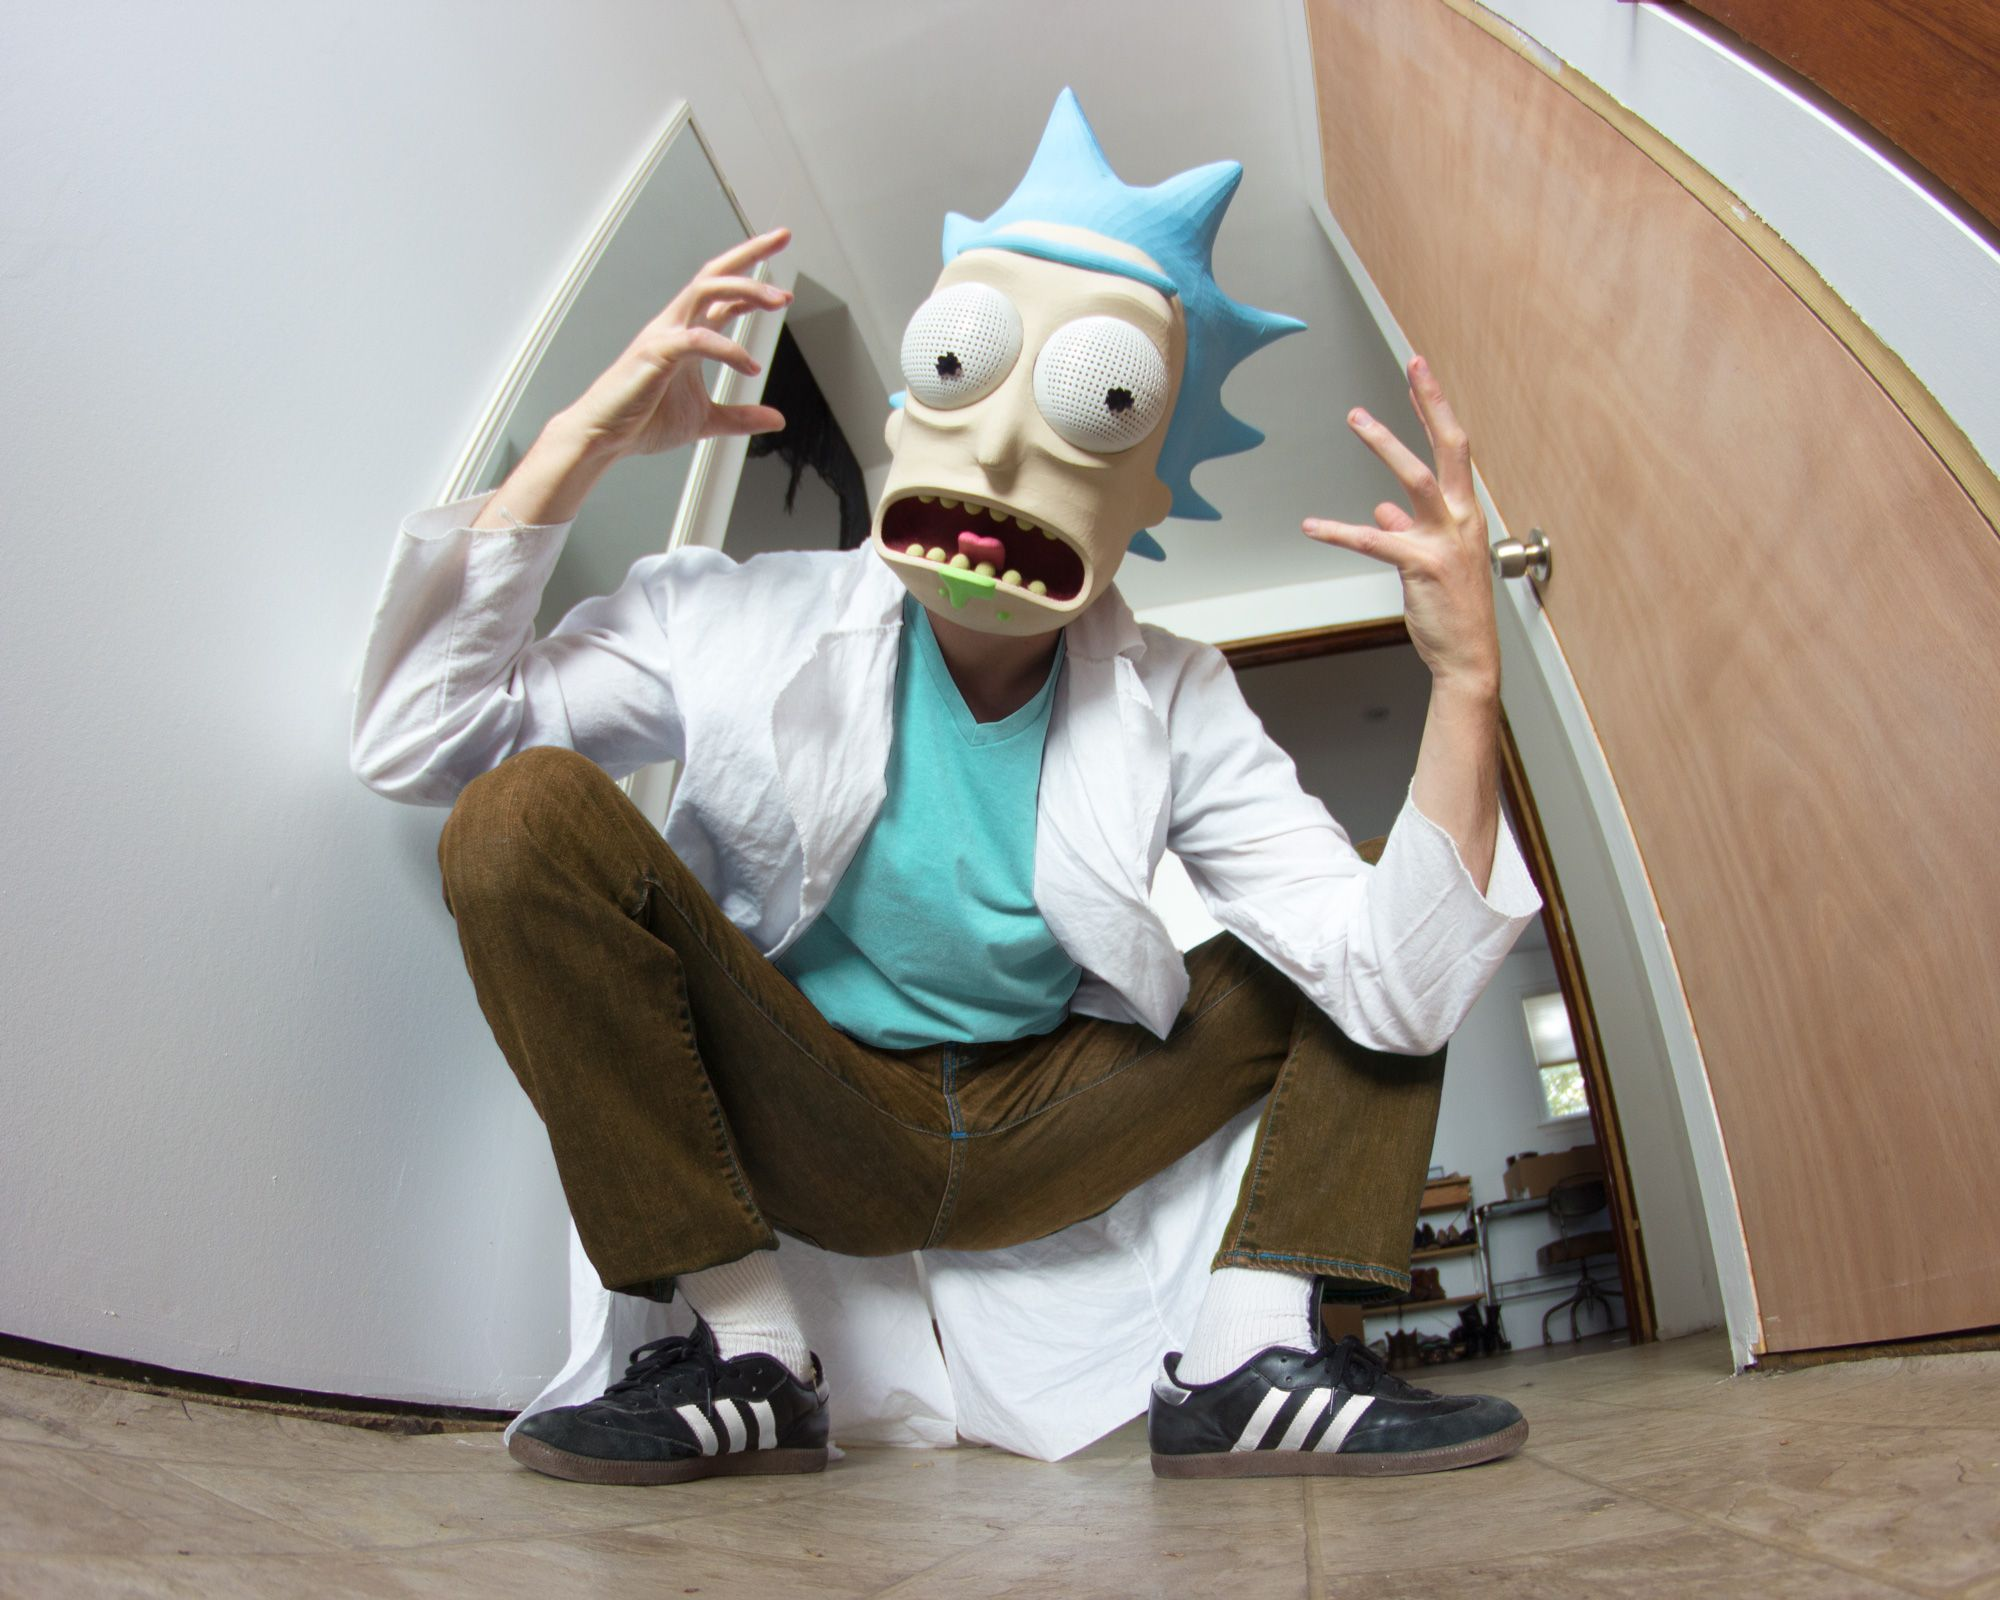 printed my Rick Sanchez mask for halloween!